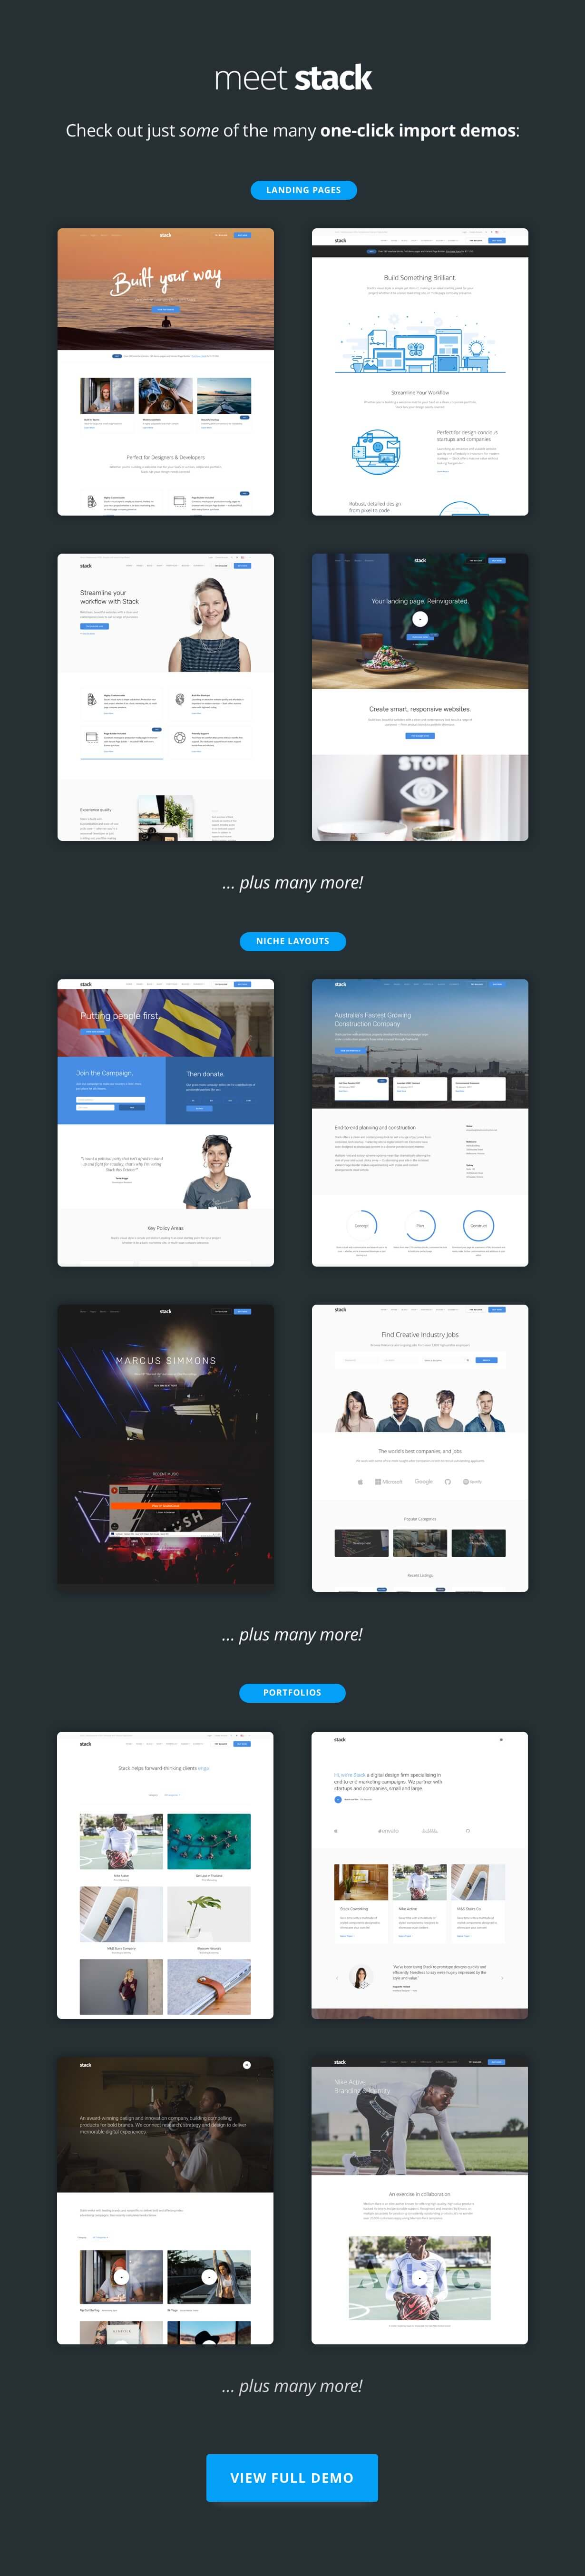 layout previews - Stack - Multi-Purpose WordPress Theme with Variant Page Builder & Visual Composer